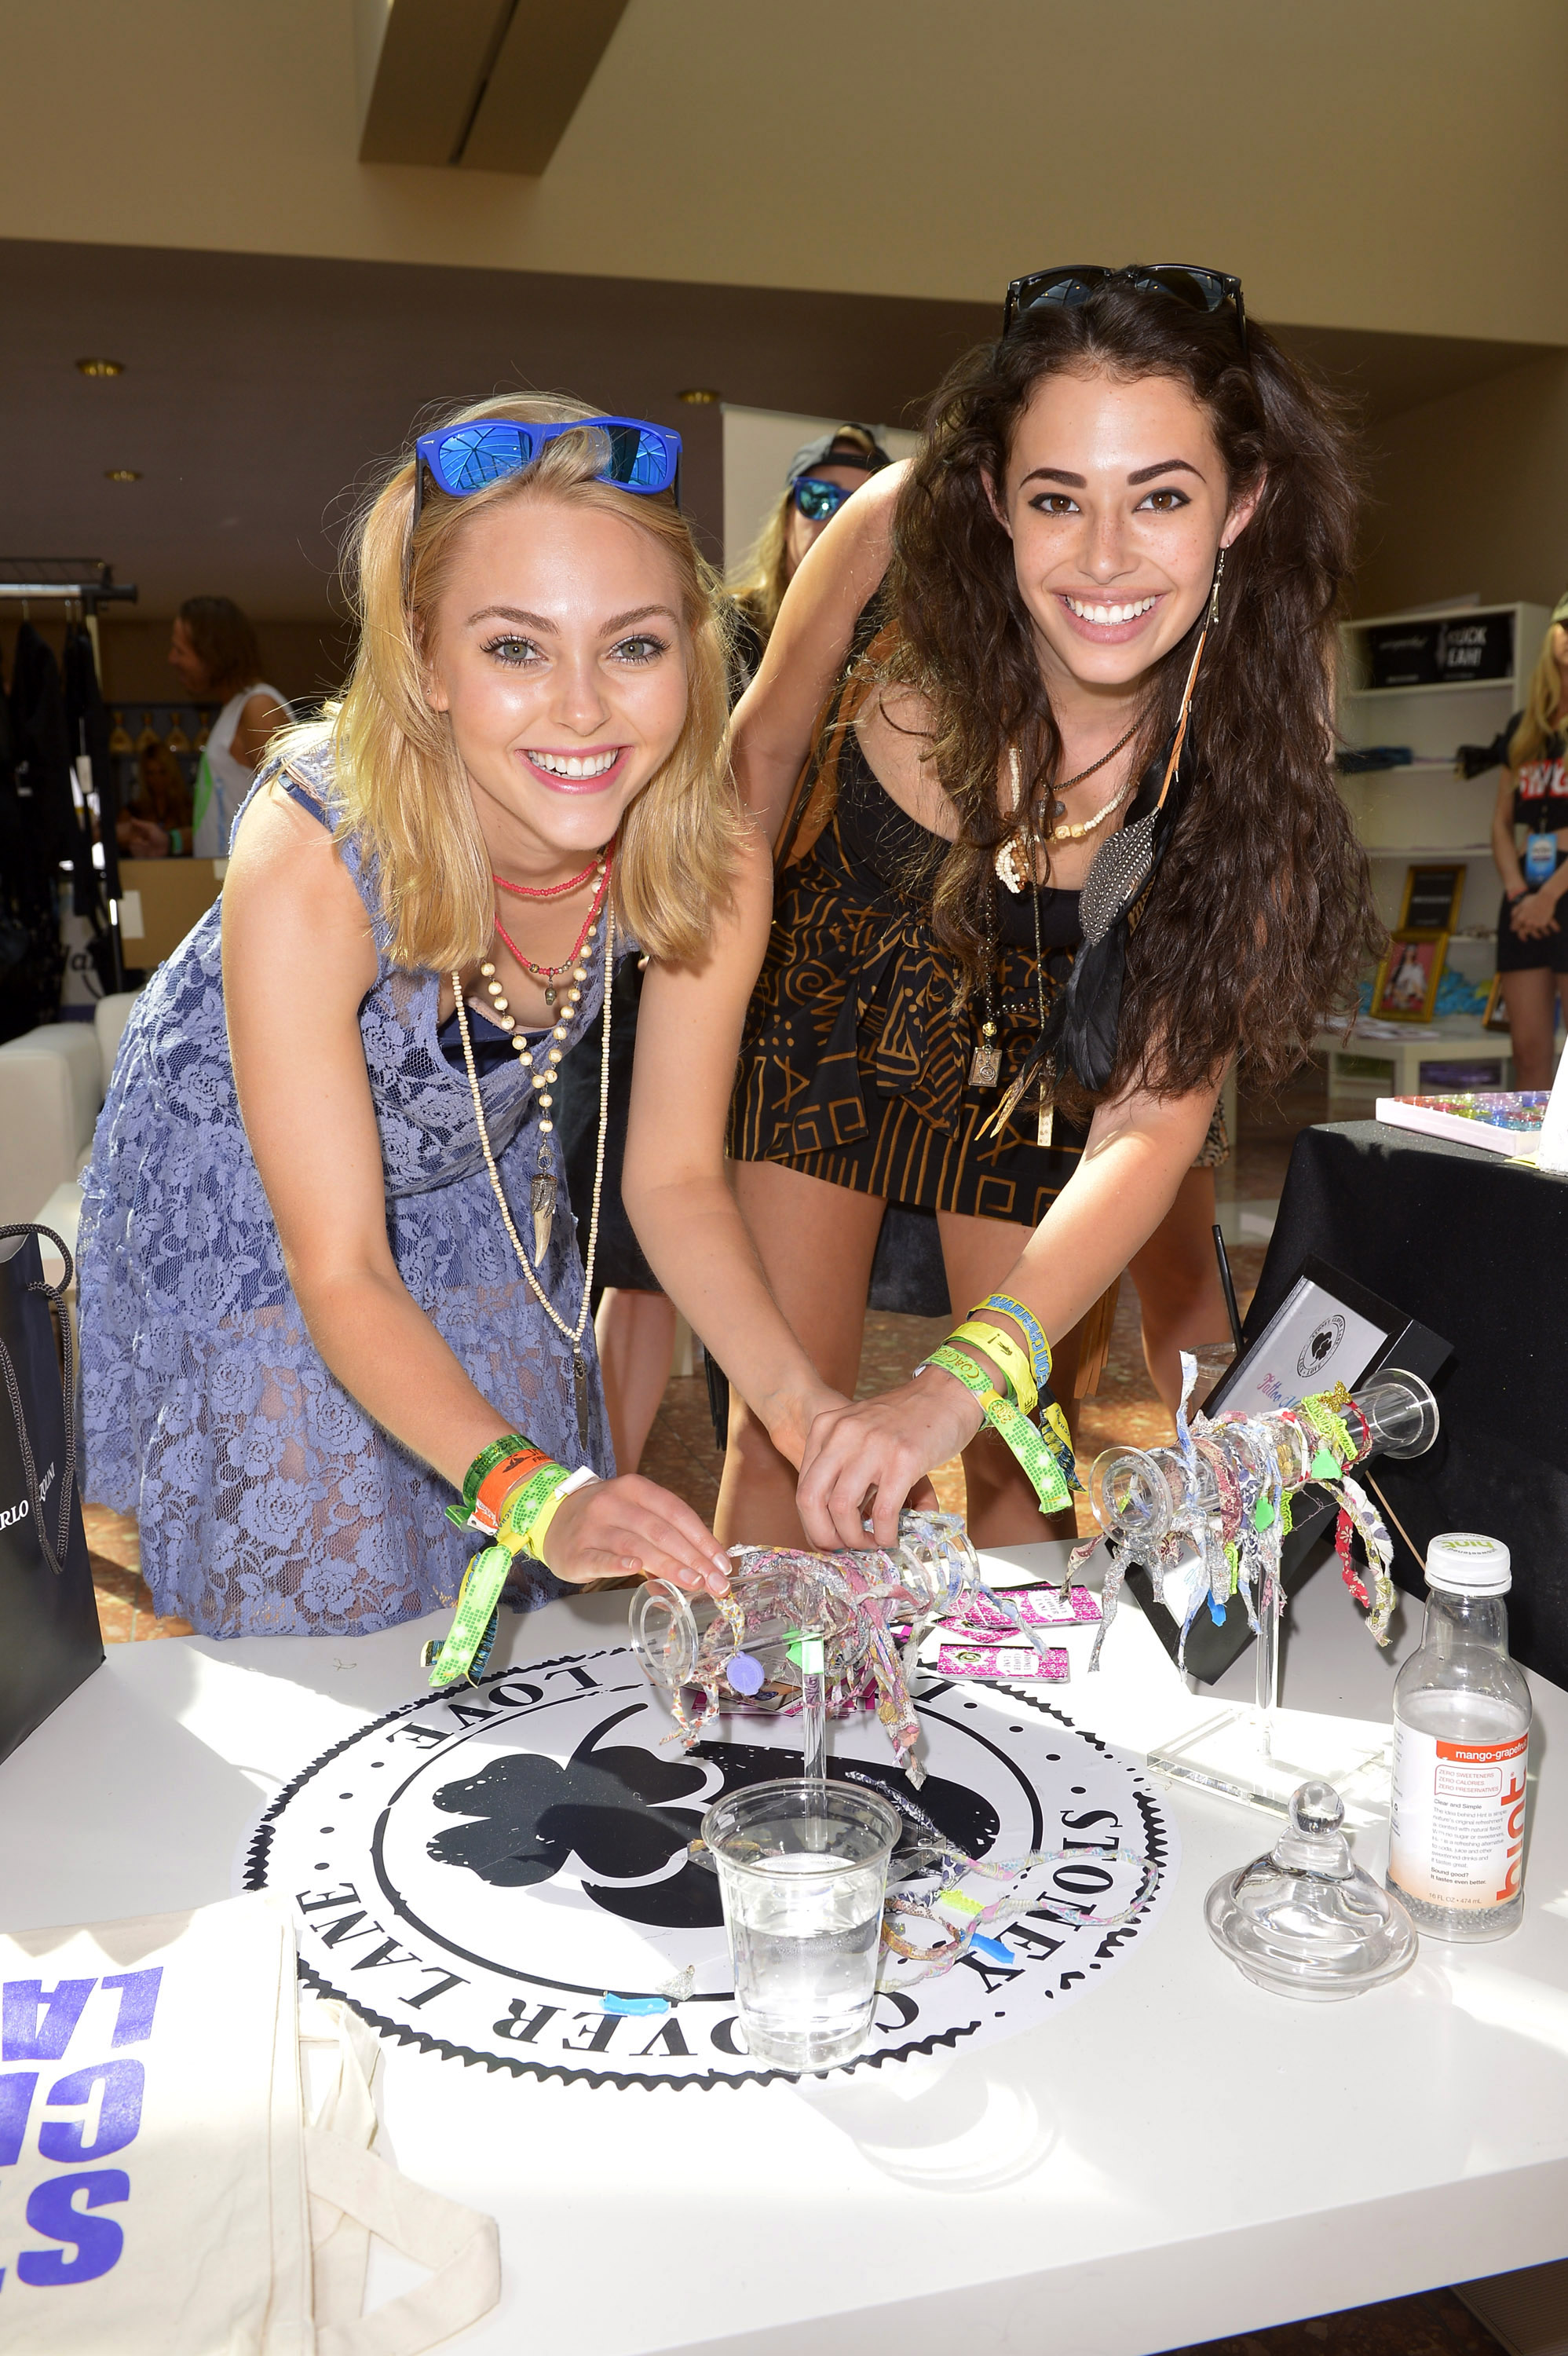 AnnaSophia Robb and Chloe Bridges at the Hard Rock Music Lounge Fools Gold Sunset Party April 14 in Palm Spring, Calif., during Coachella.